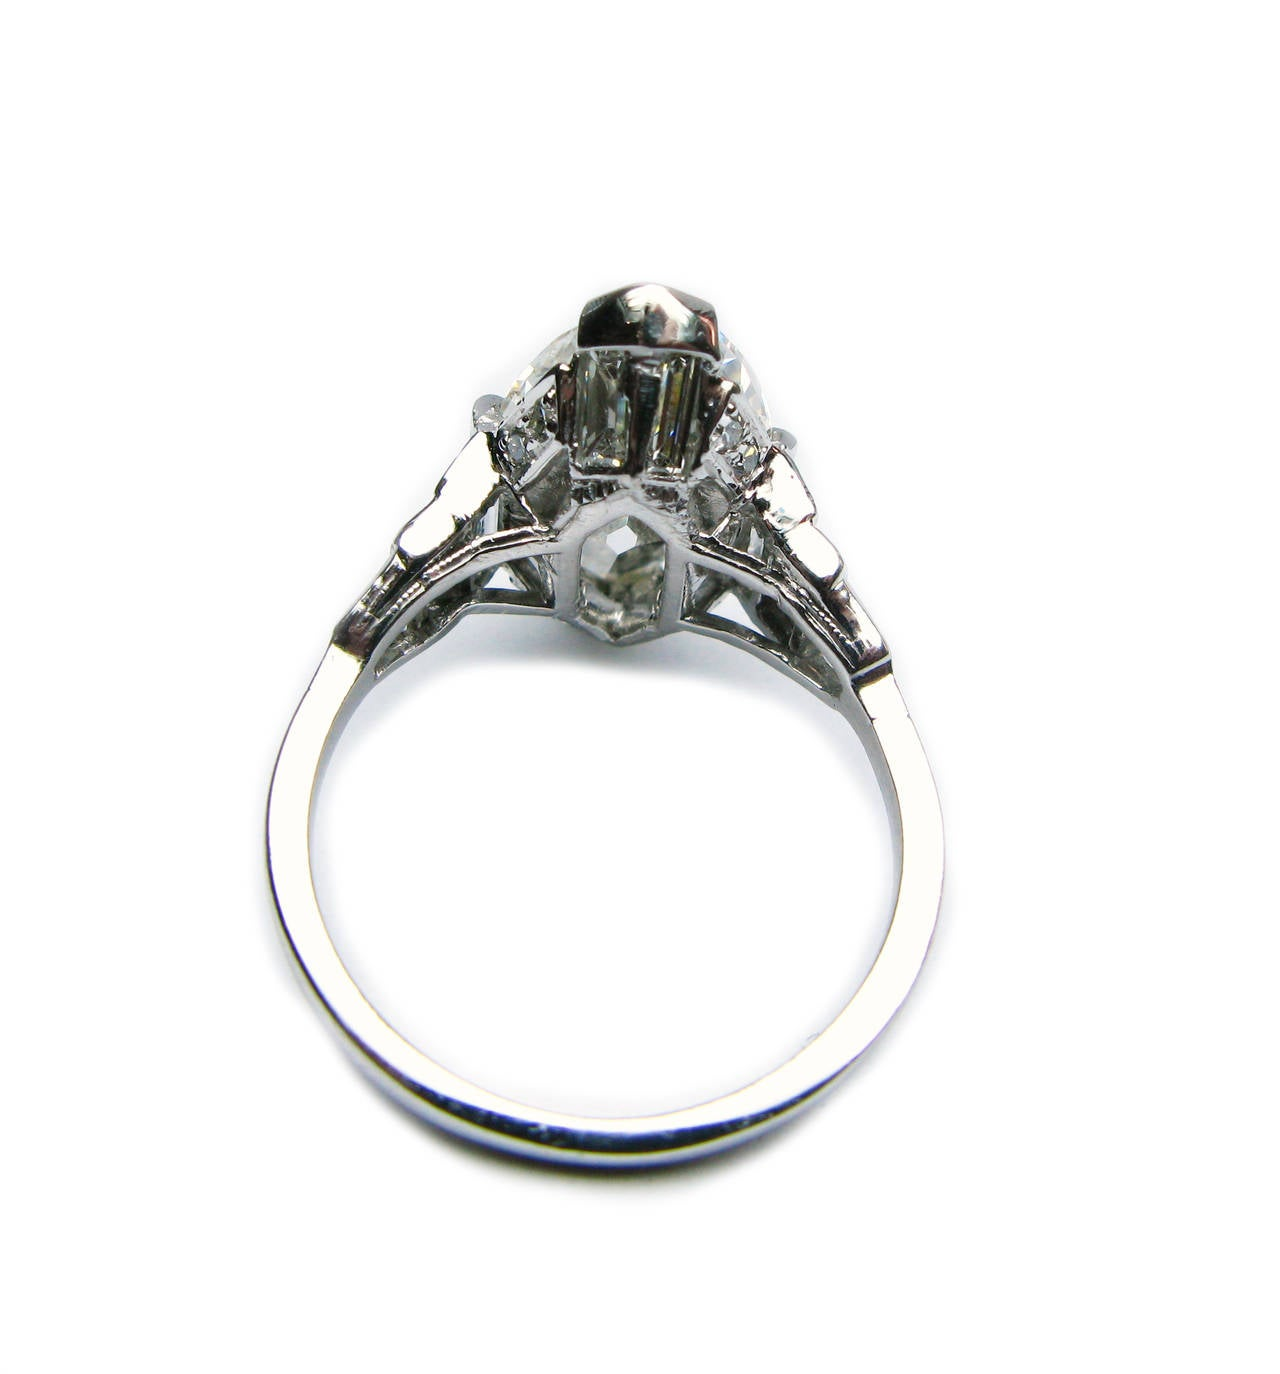 Art Deco GIA Cert Oval Diamond Platinum Ring For Sale 1